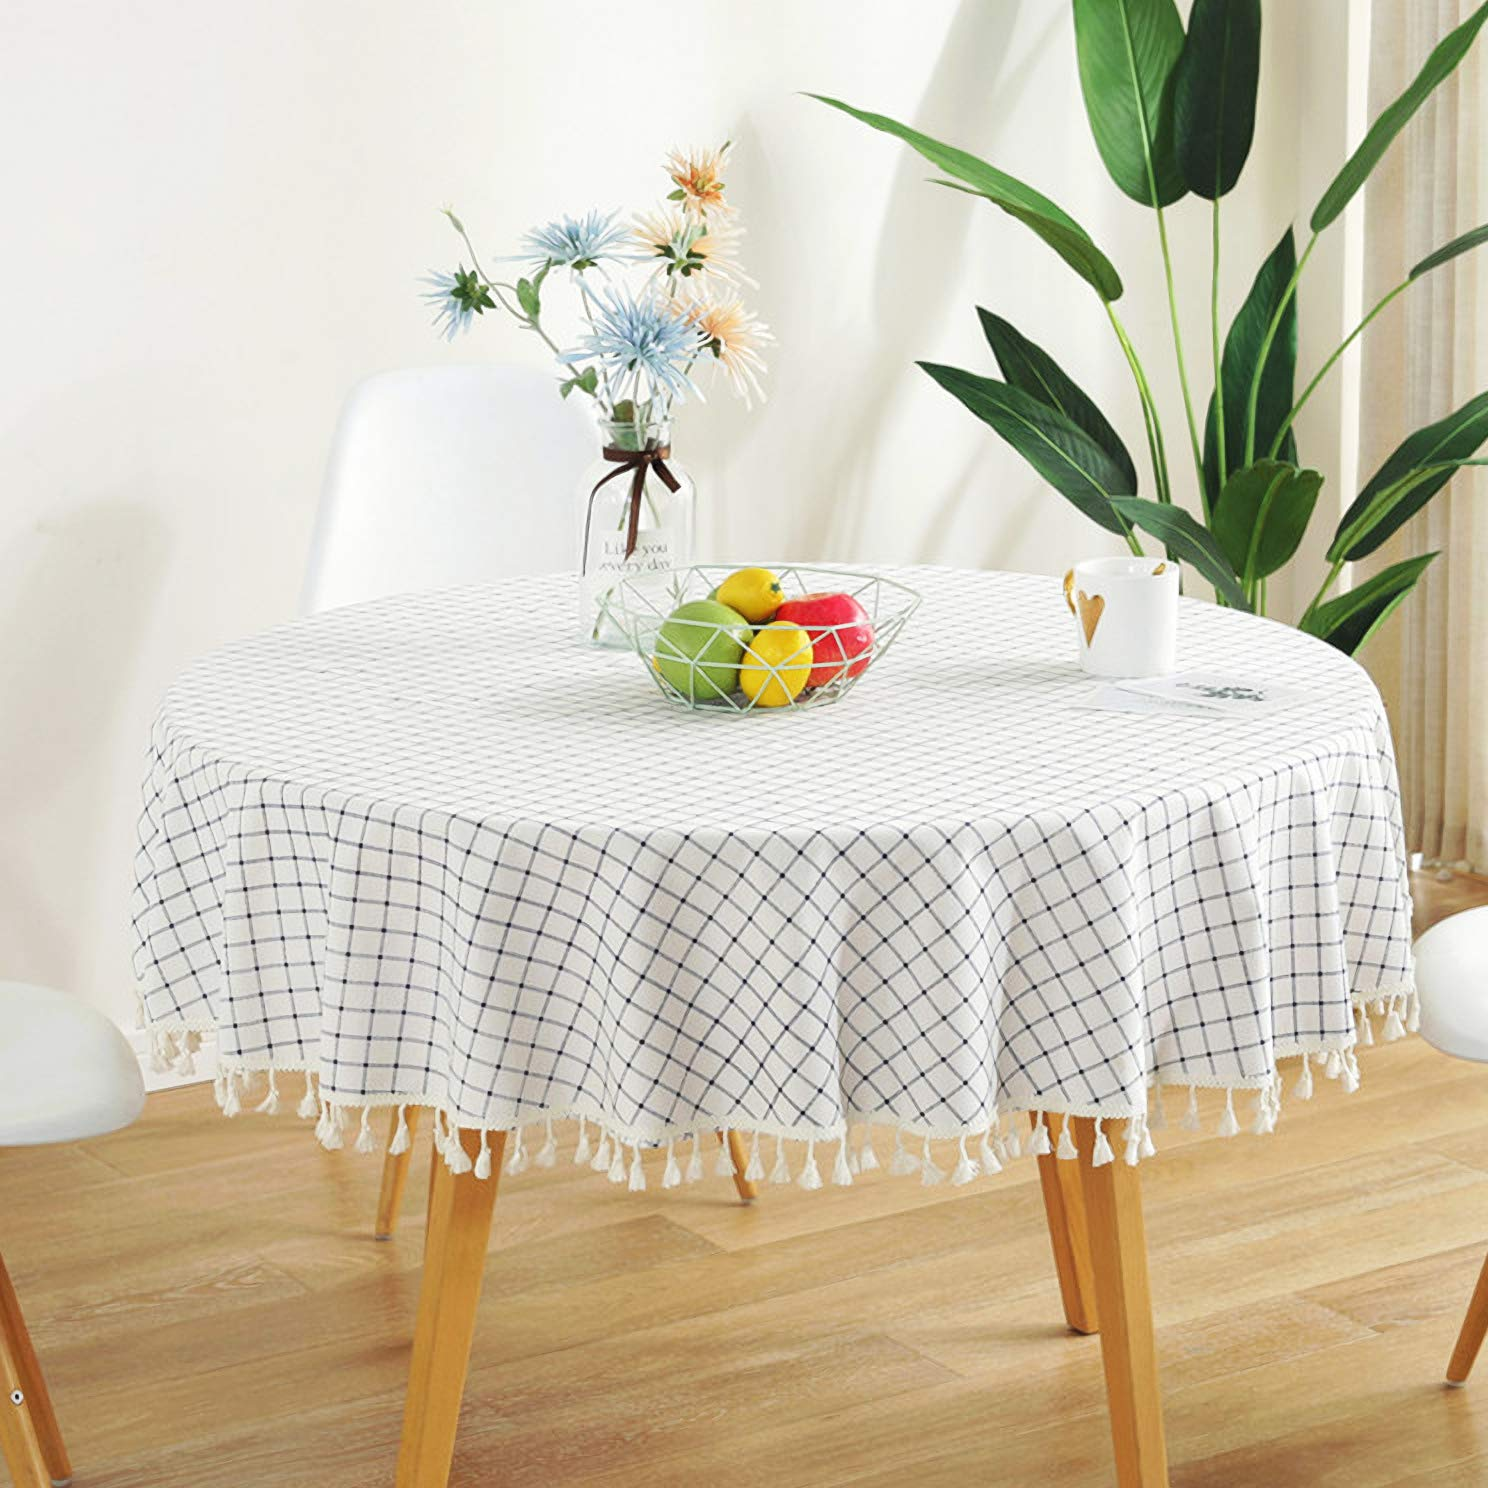 Lulutus Checkered Tassel Tablecloth Round Dust-Proof Cotton Linen Fabric Table 60 Inch Indoor Outdoor Camping Picnic Circle Table Cover Kitchen Dining Living Room Restaurant Party Decoration